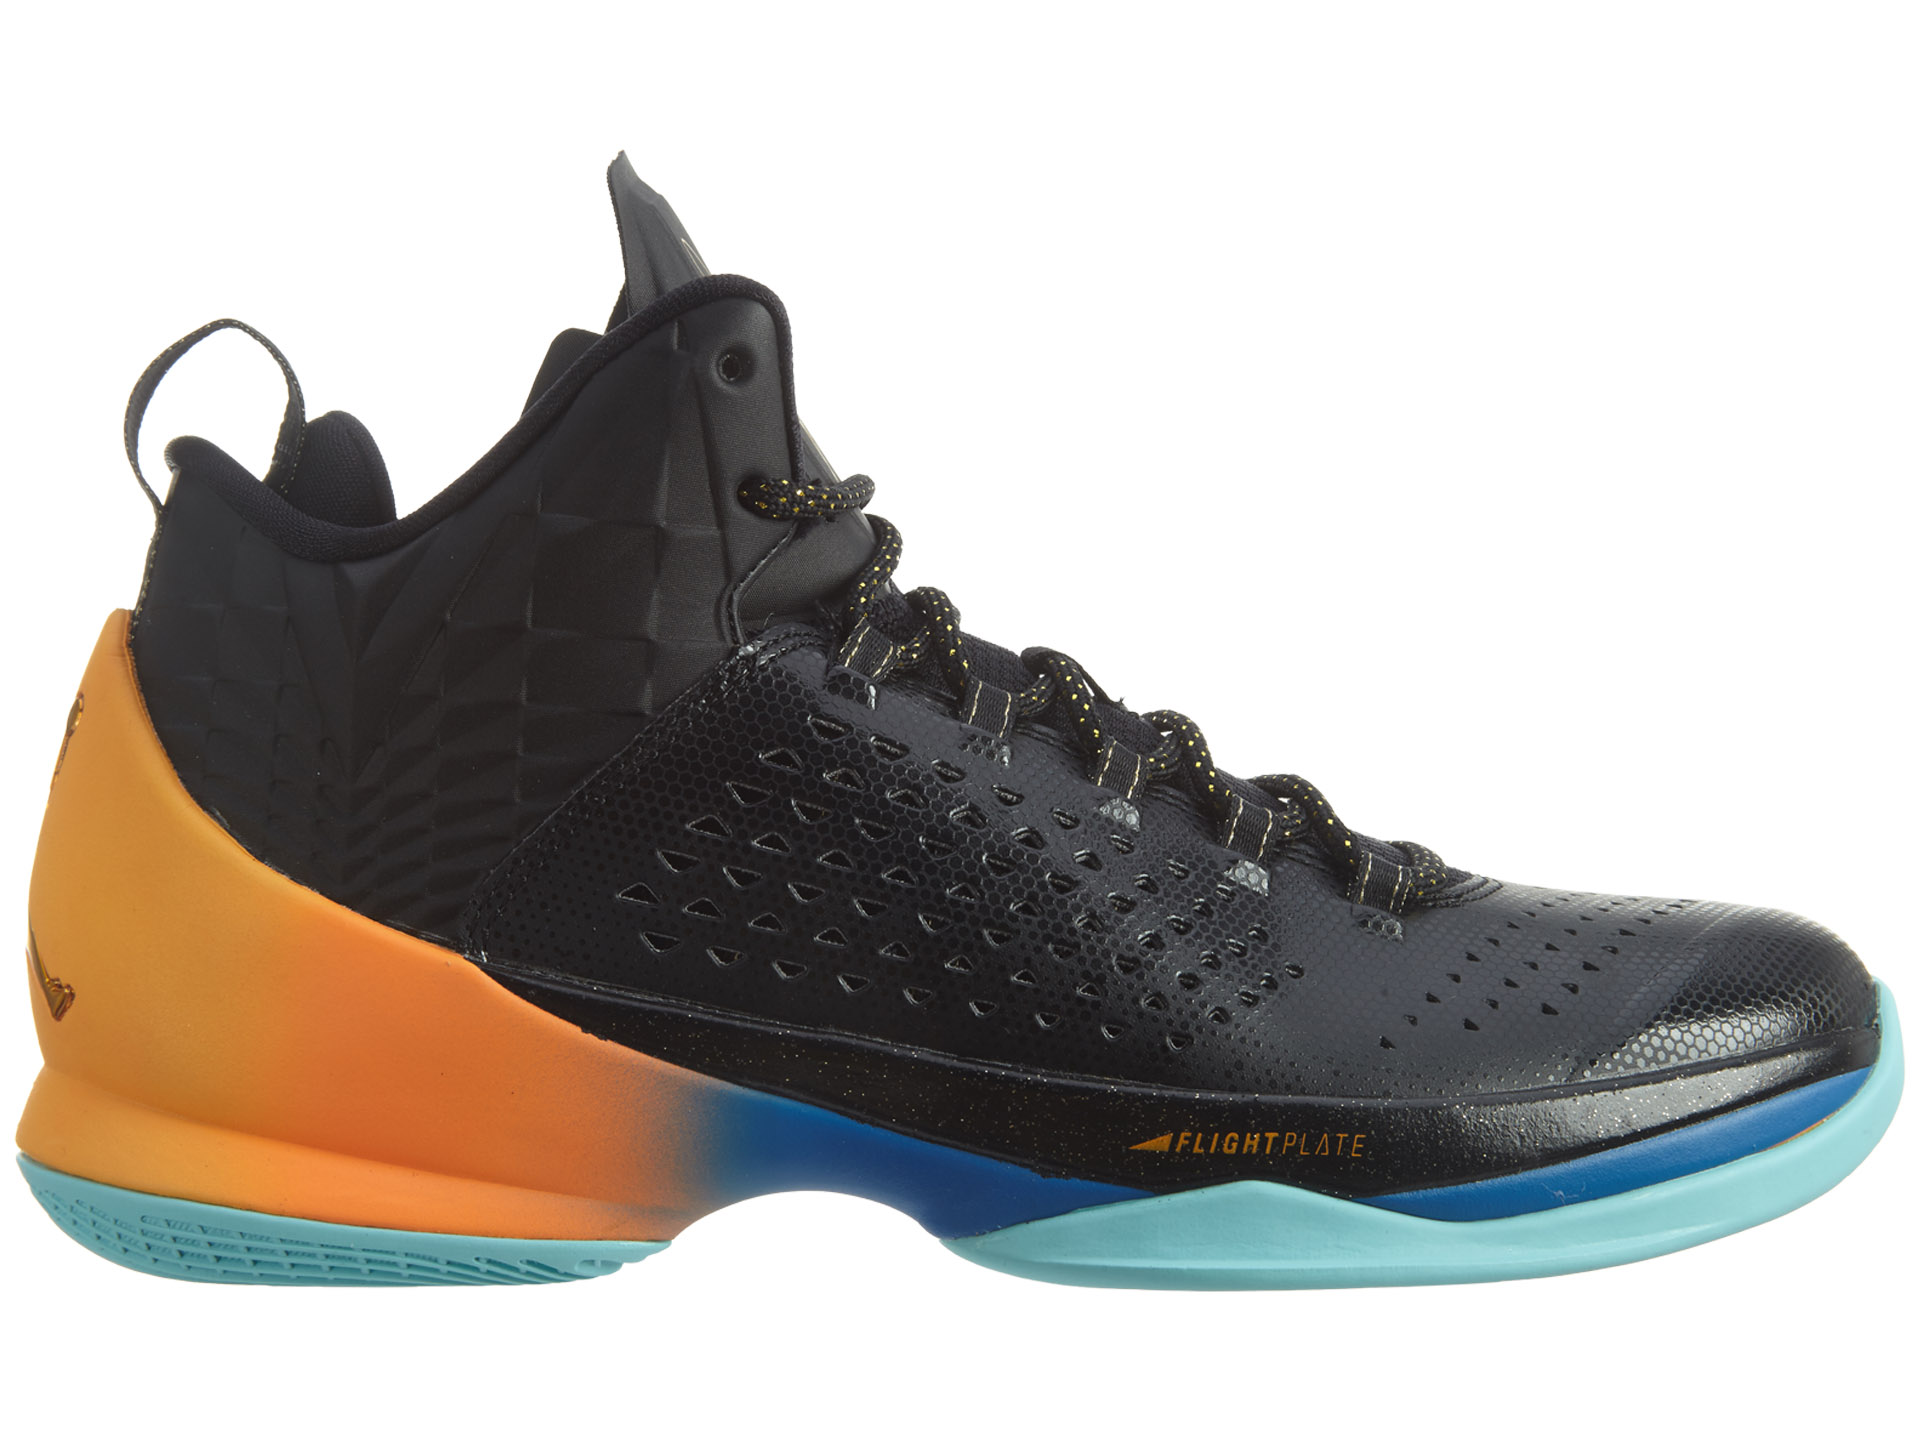 285c80fed38070 ireland jordan melo m11 black metallic gold bright ctrs lsr 75eef 780a9